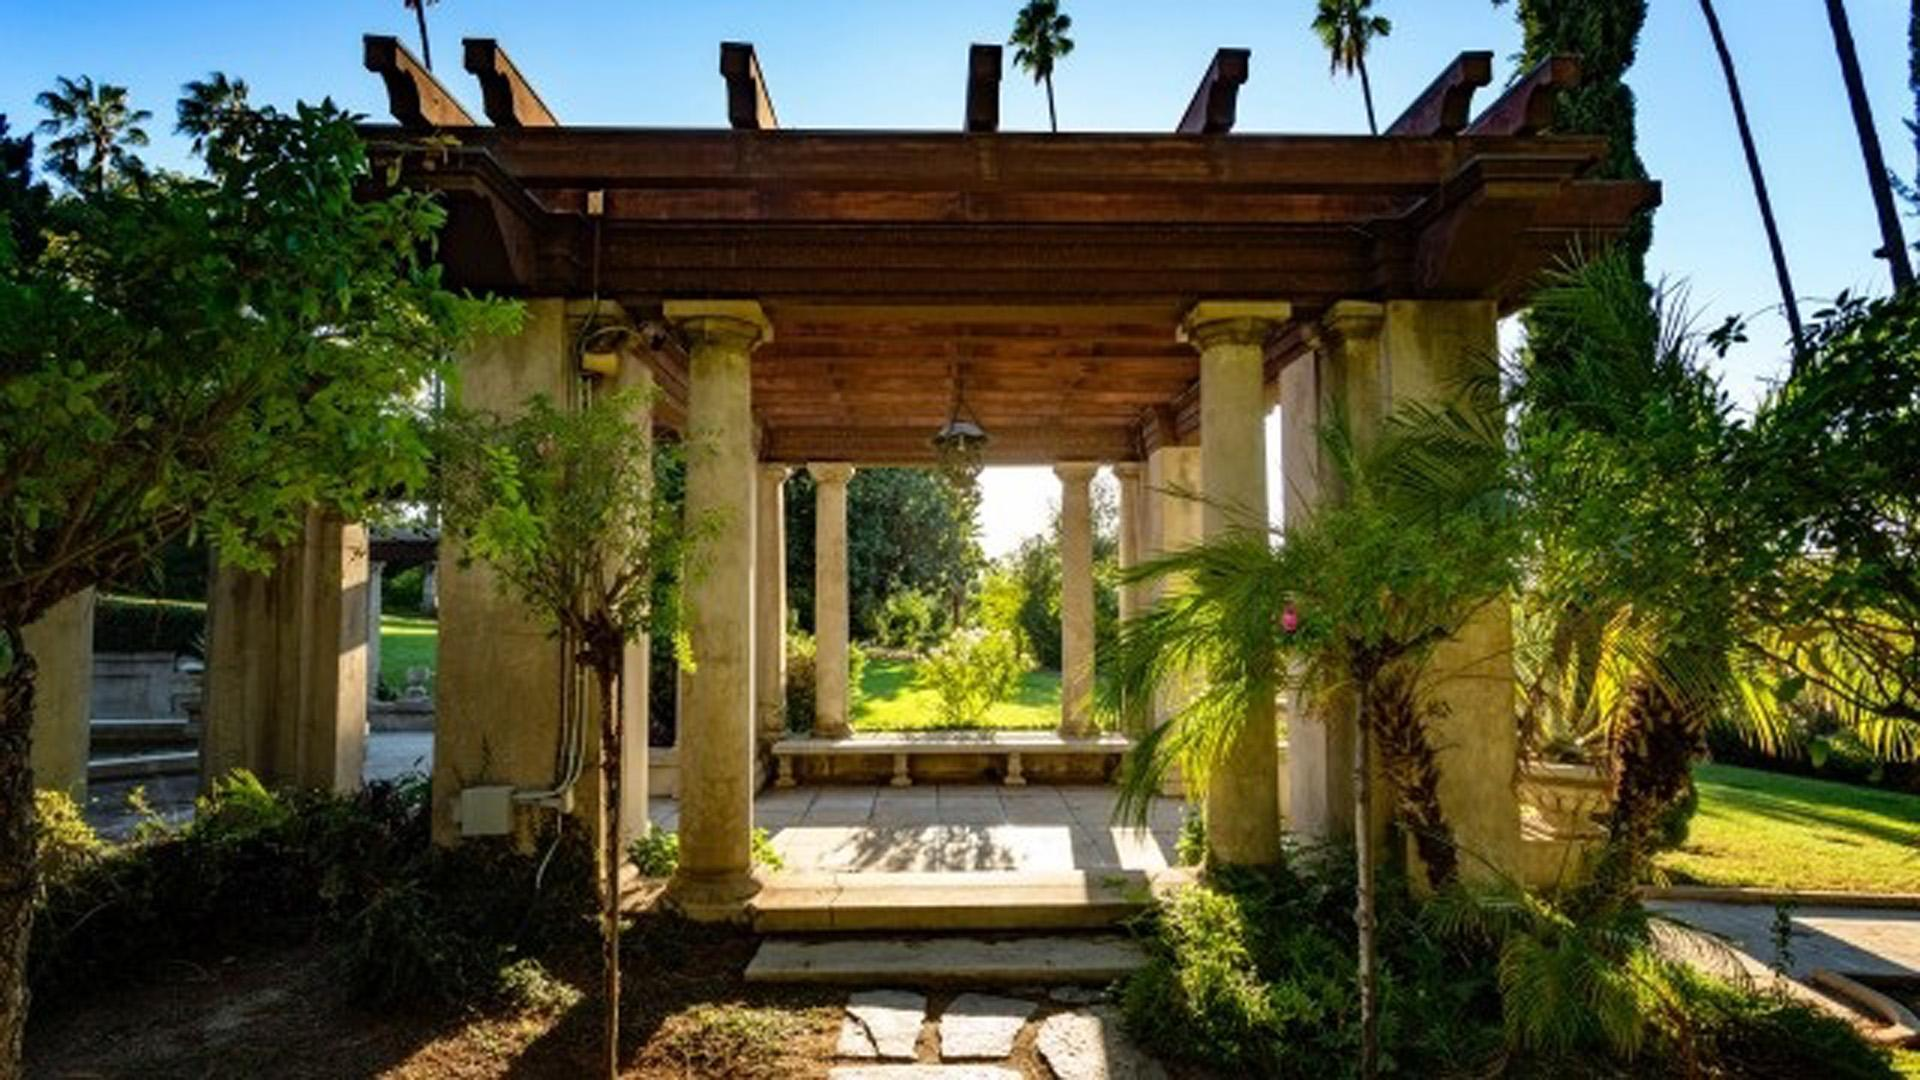 Rent Kimberly Crest House & Gardens | Corporate Events | Wedding ...